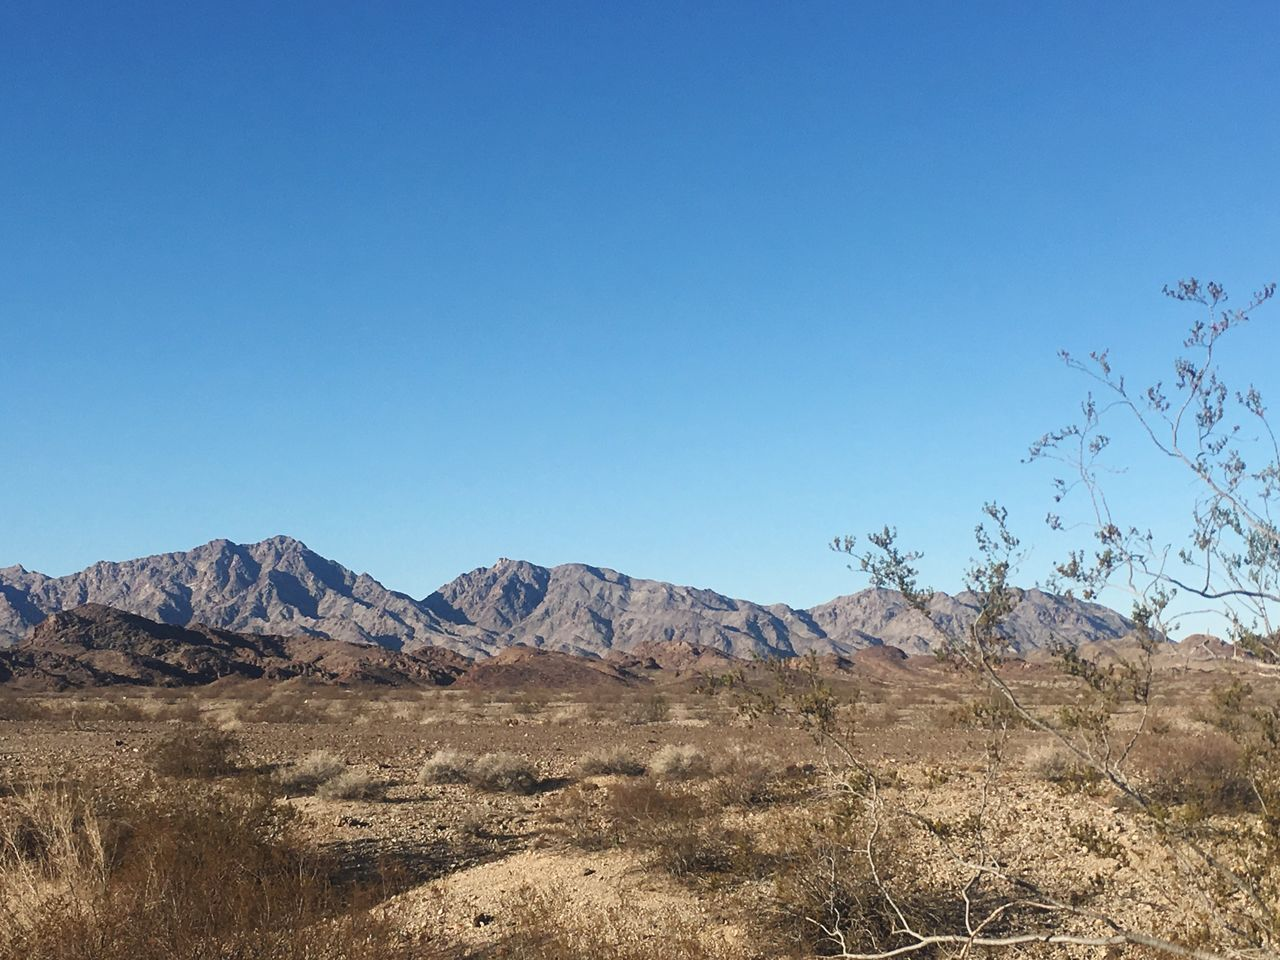 Clear Sky Landscape Geology Mountain Range Desert Mountains Outdoors Vegetation Backroads Arid Climate Nature Scenics Copy Space No People